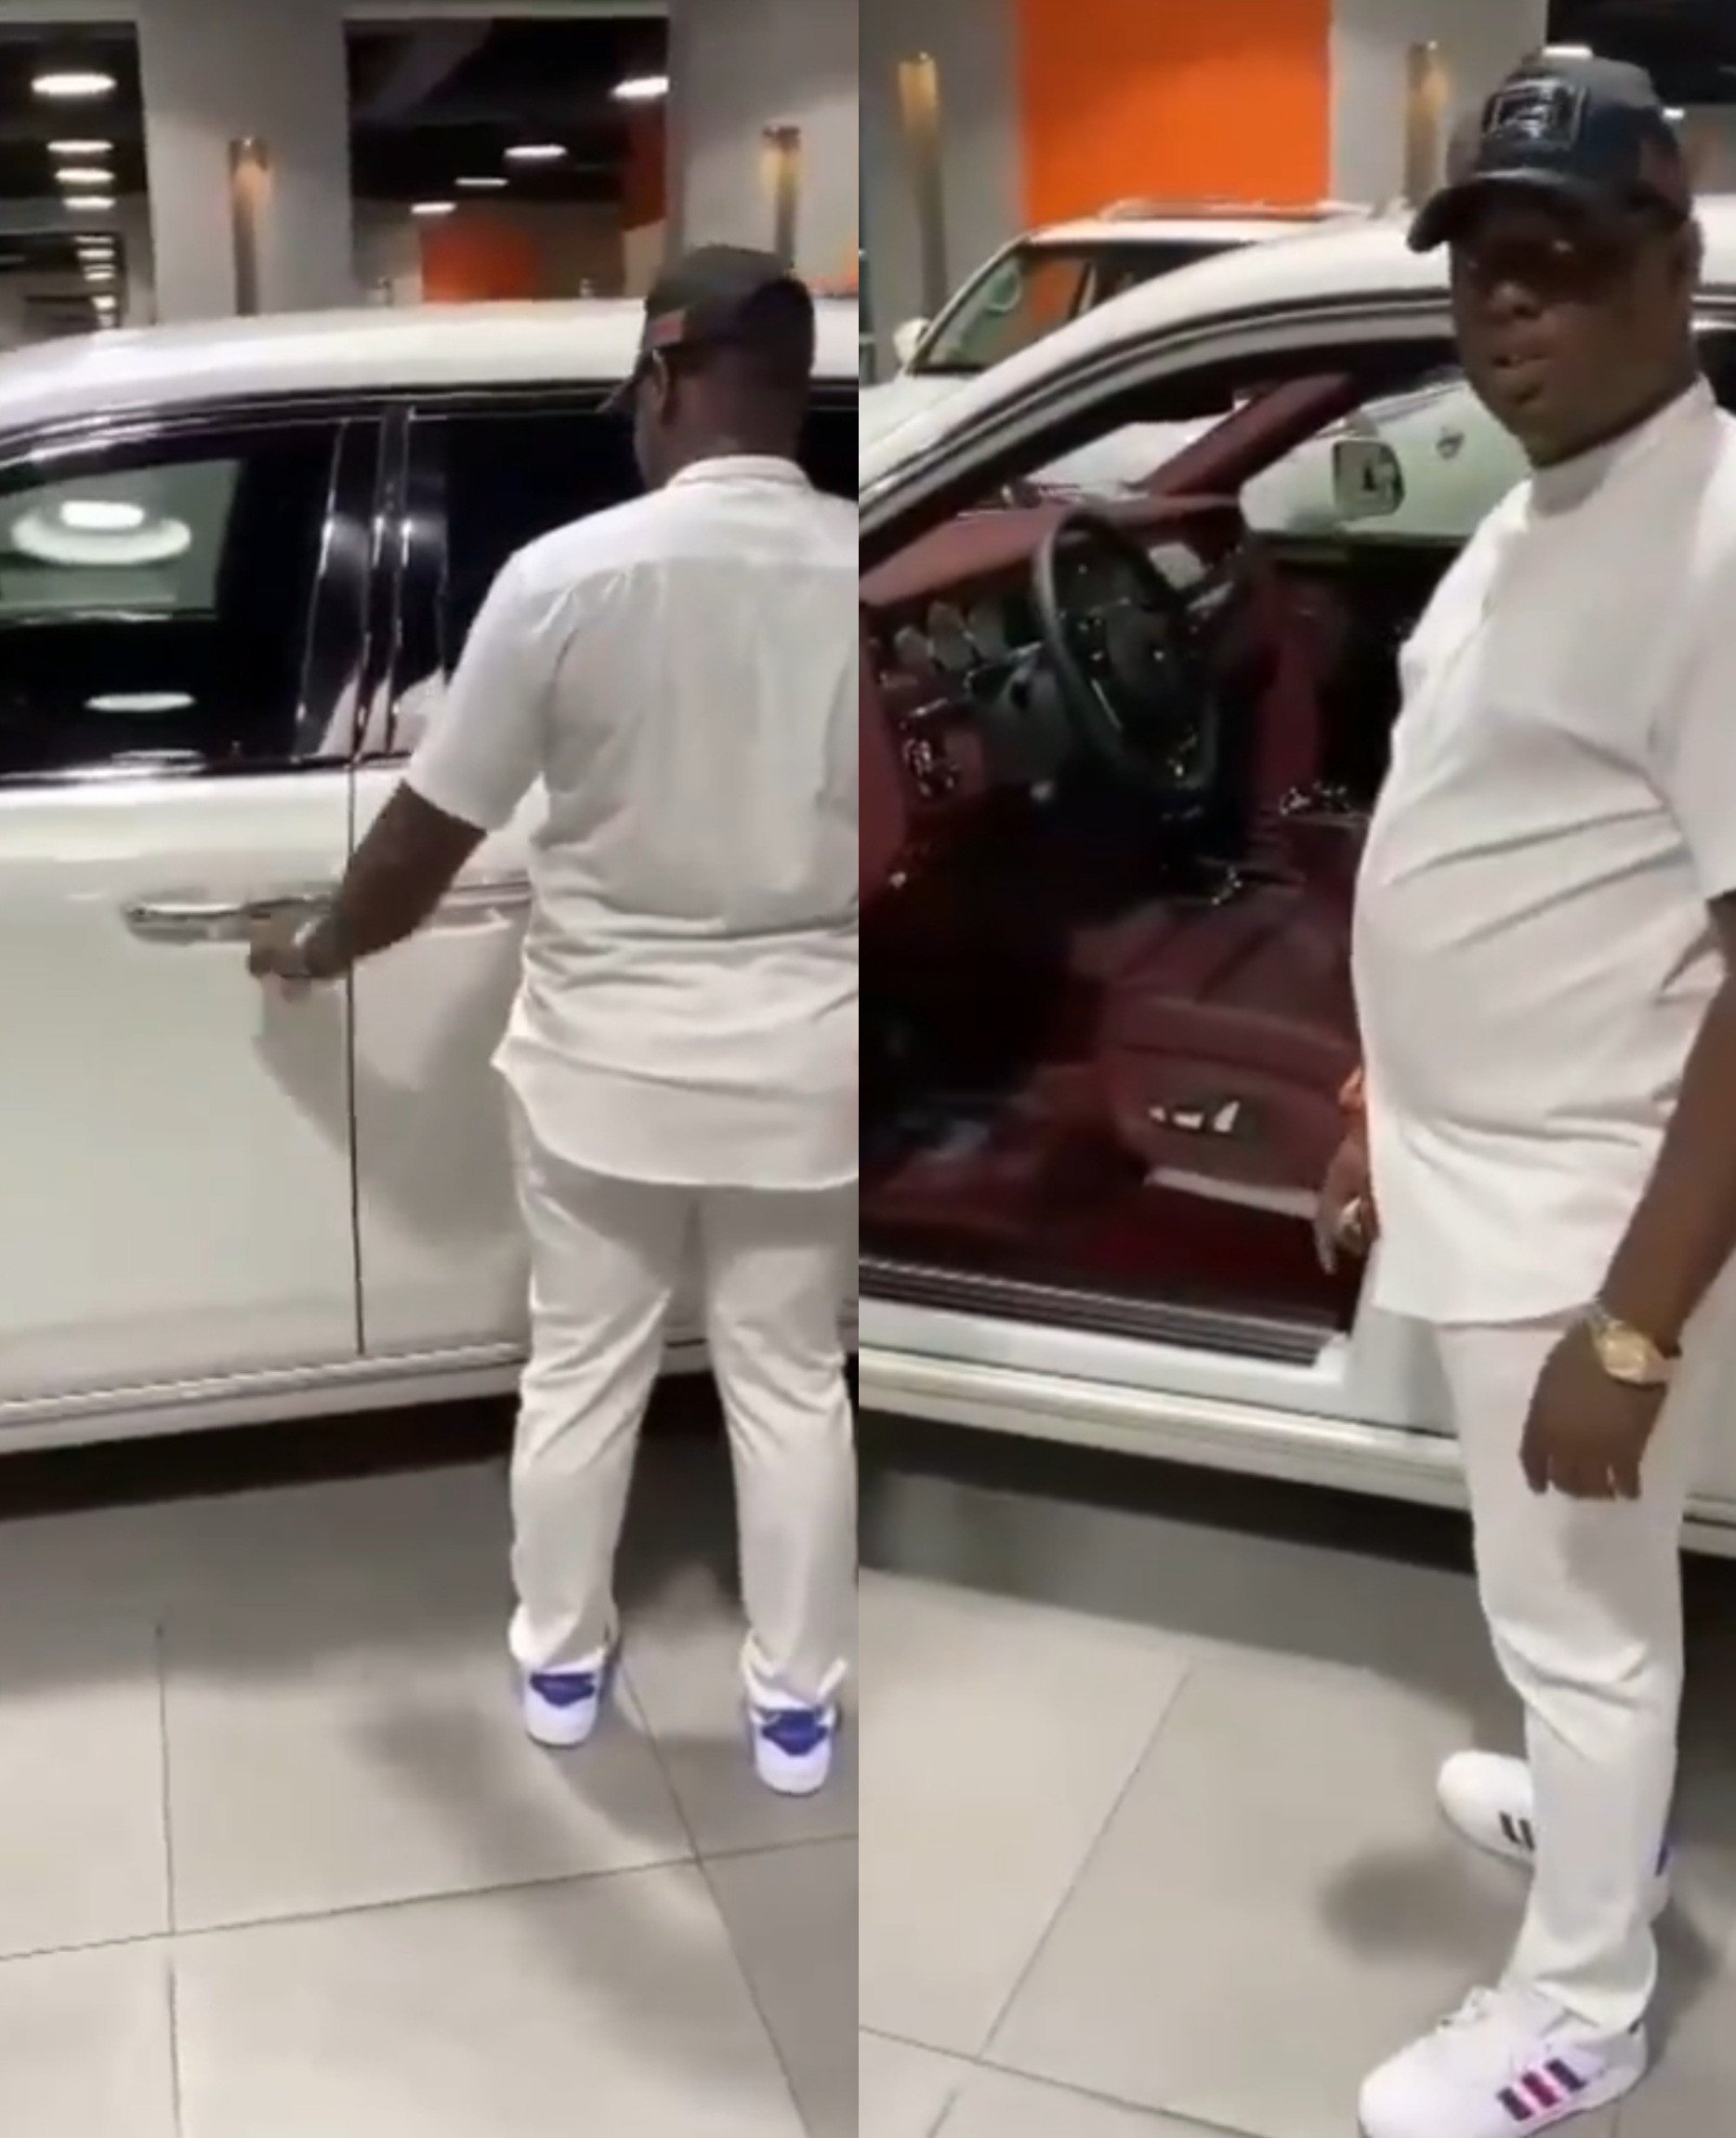 """""""LET EFCC COME, LET FBI COME, WE'LL SETTLE THEM,"""" OBIEZE NESTOR SAYS WHILE BUYING ROLLS ROYCE PHANTOM 8 2020 MODEL WEEKS BEFORE HE DIED IN DUBAI POLICE CUSTODY"""